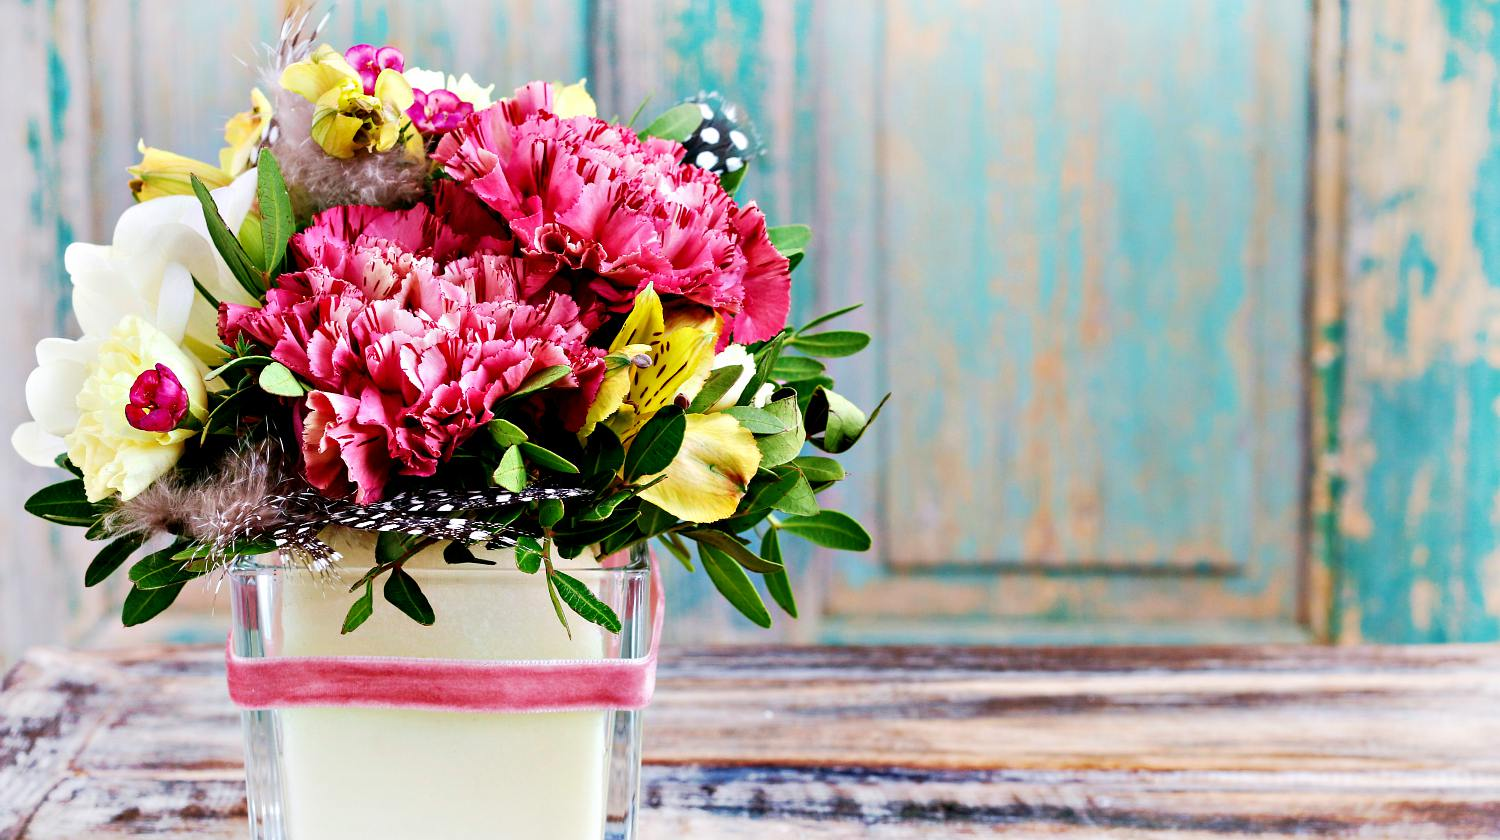 Featured | Bouquet of pink carnations and yellow alstroemeria flowers | DIY Gifts You Can Make In Under An Hour